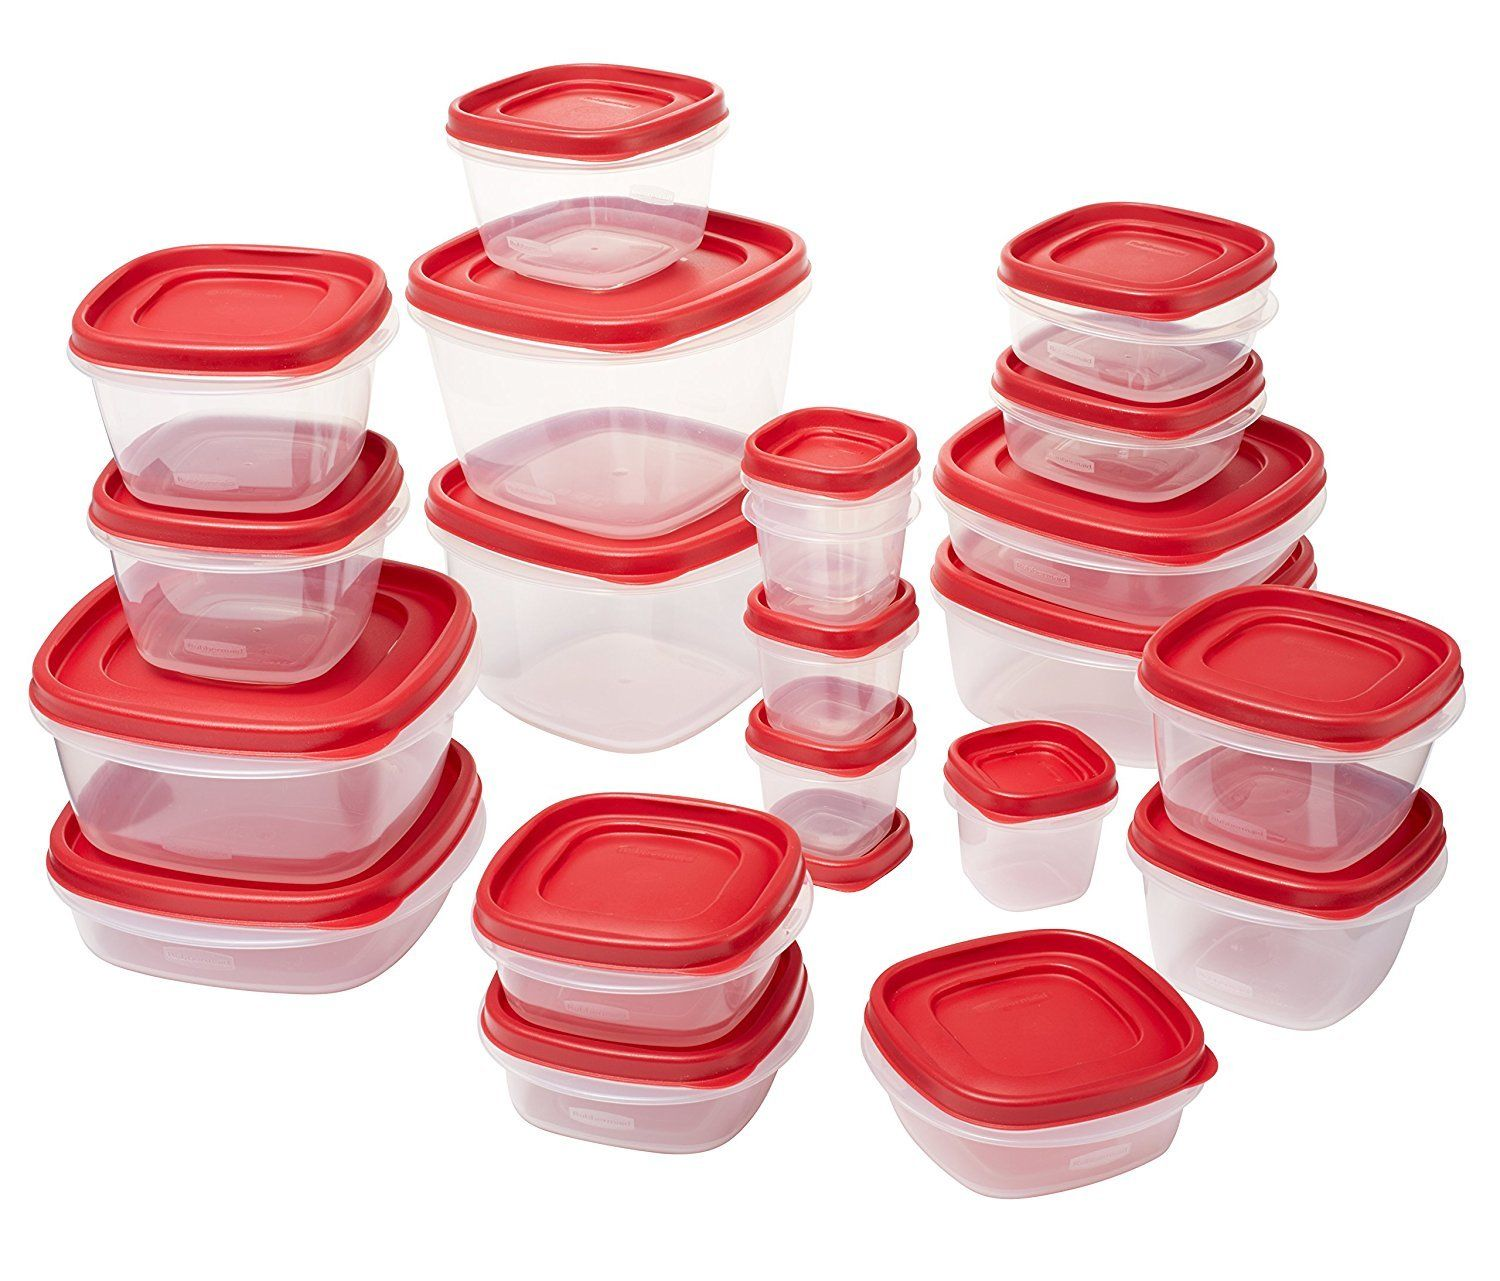 Rubbermaid Easy Find Lids Food Storage Containers, 8 Sets 1